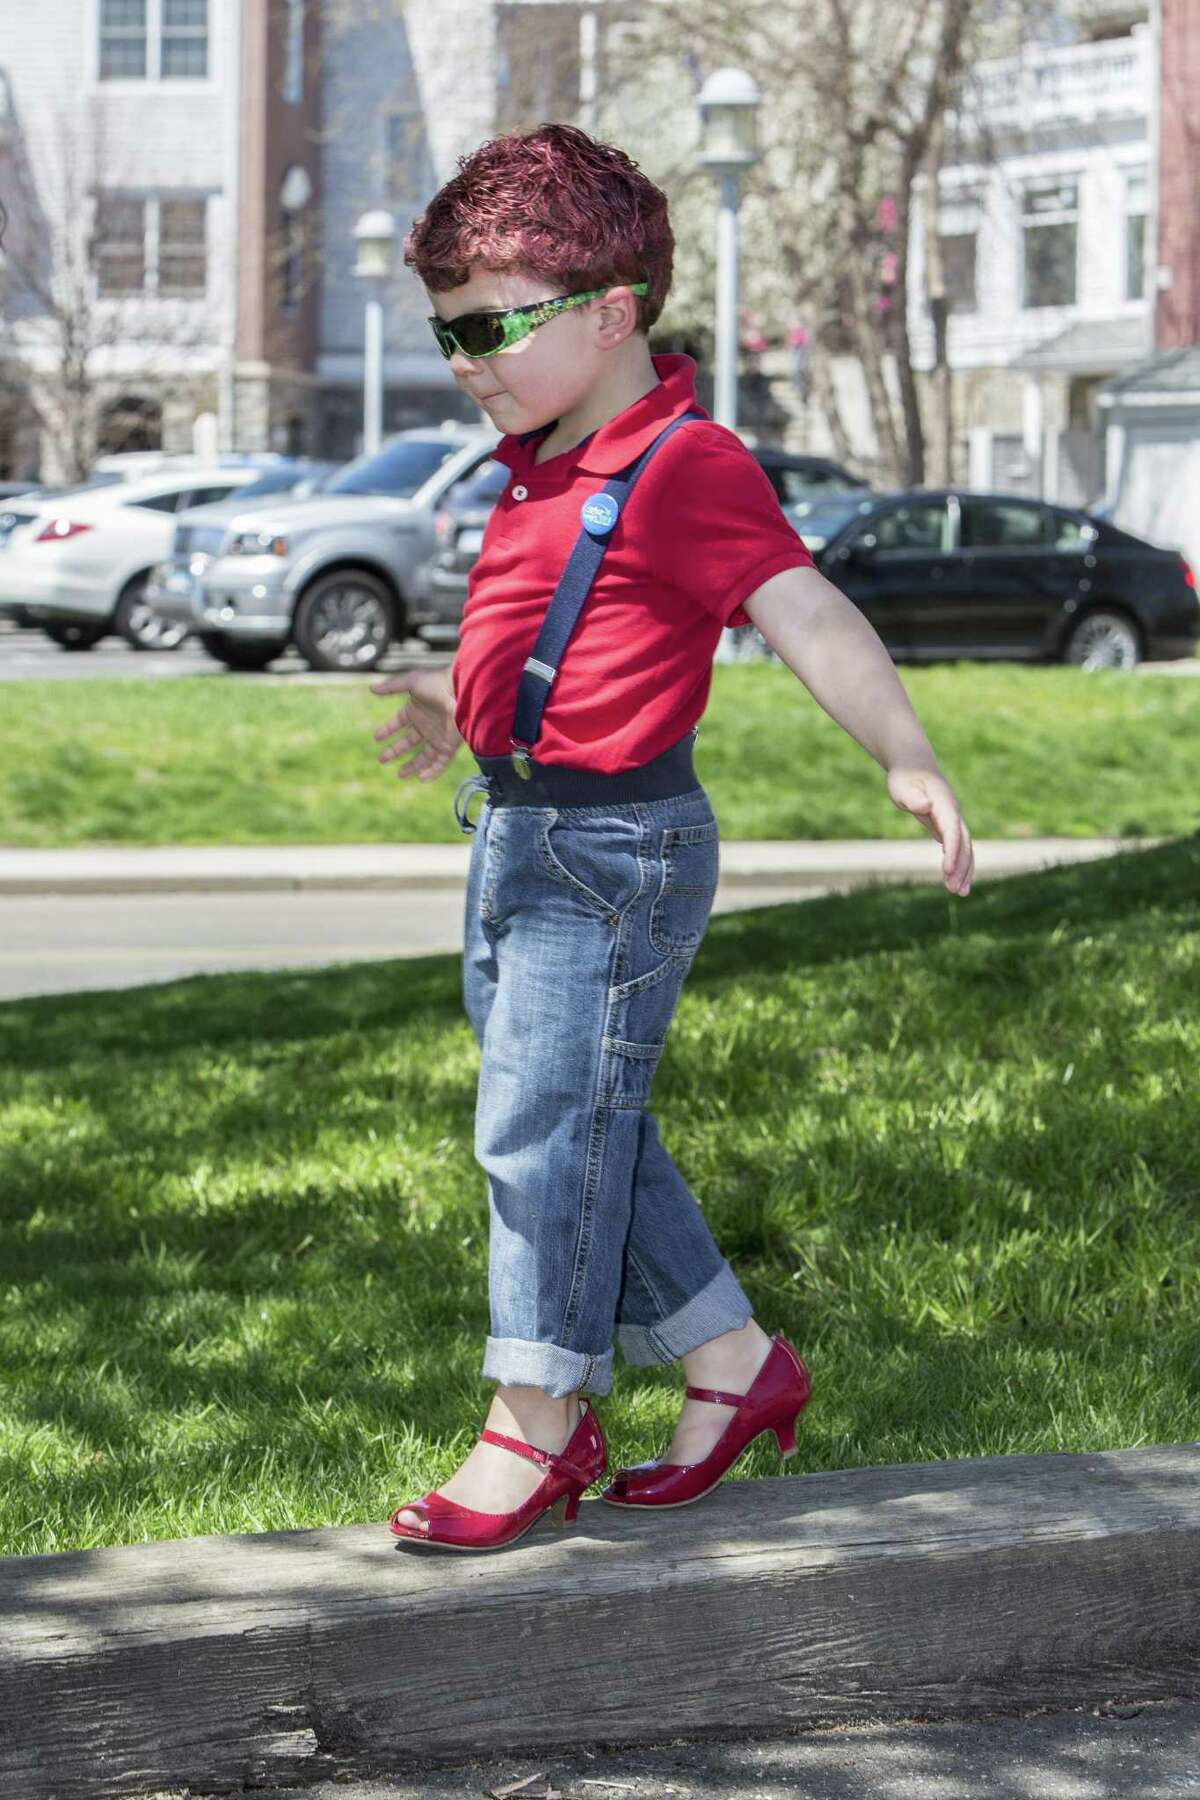 Nathan Dezenzo, 4, plays at Lisman Landing in Milford, Conn wearing ladies shoes in accordance with the playful rules of the Walk A Mile In Her Shoes event held by The Rape Crisis Center of Milford. The event was held on Sunday, April 23, 2017. The annual walk is held to raise awareness around issues of rape, sexual assault and gender violence.